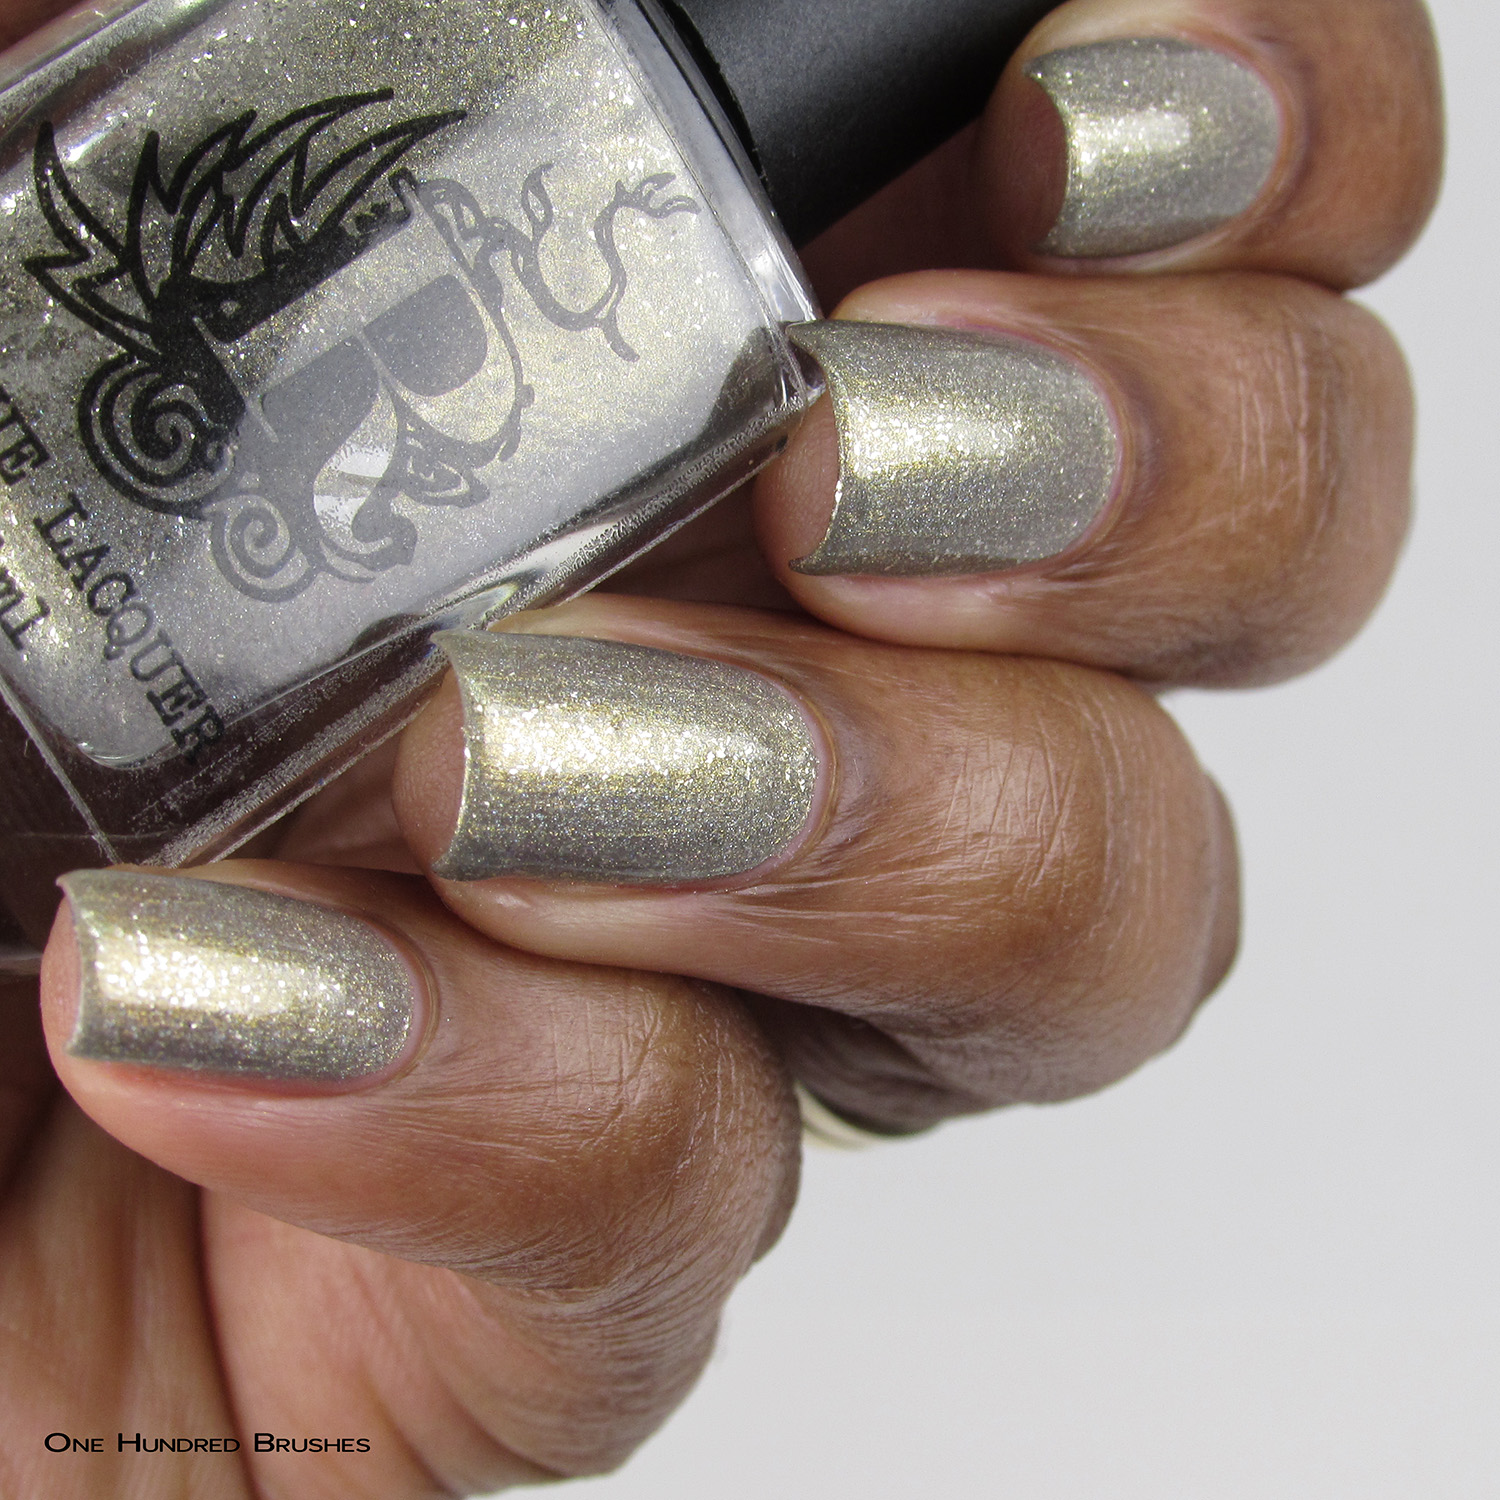 Son of Atlantis - Rogue Lacquer - HHC Aug 2018